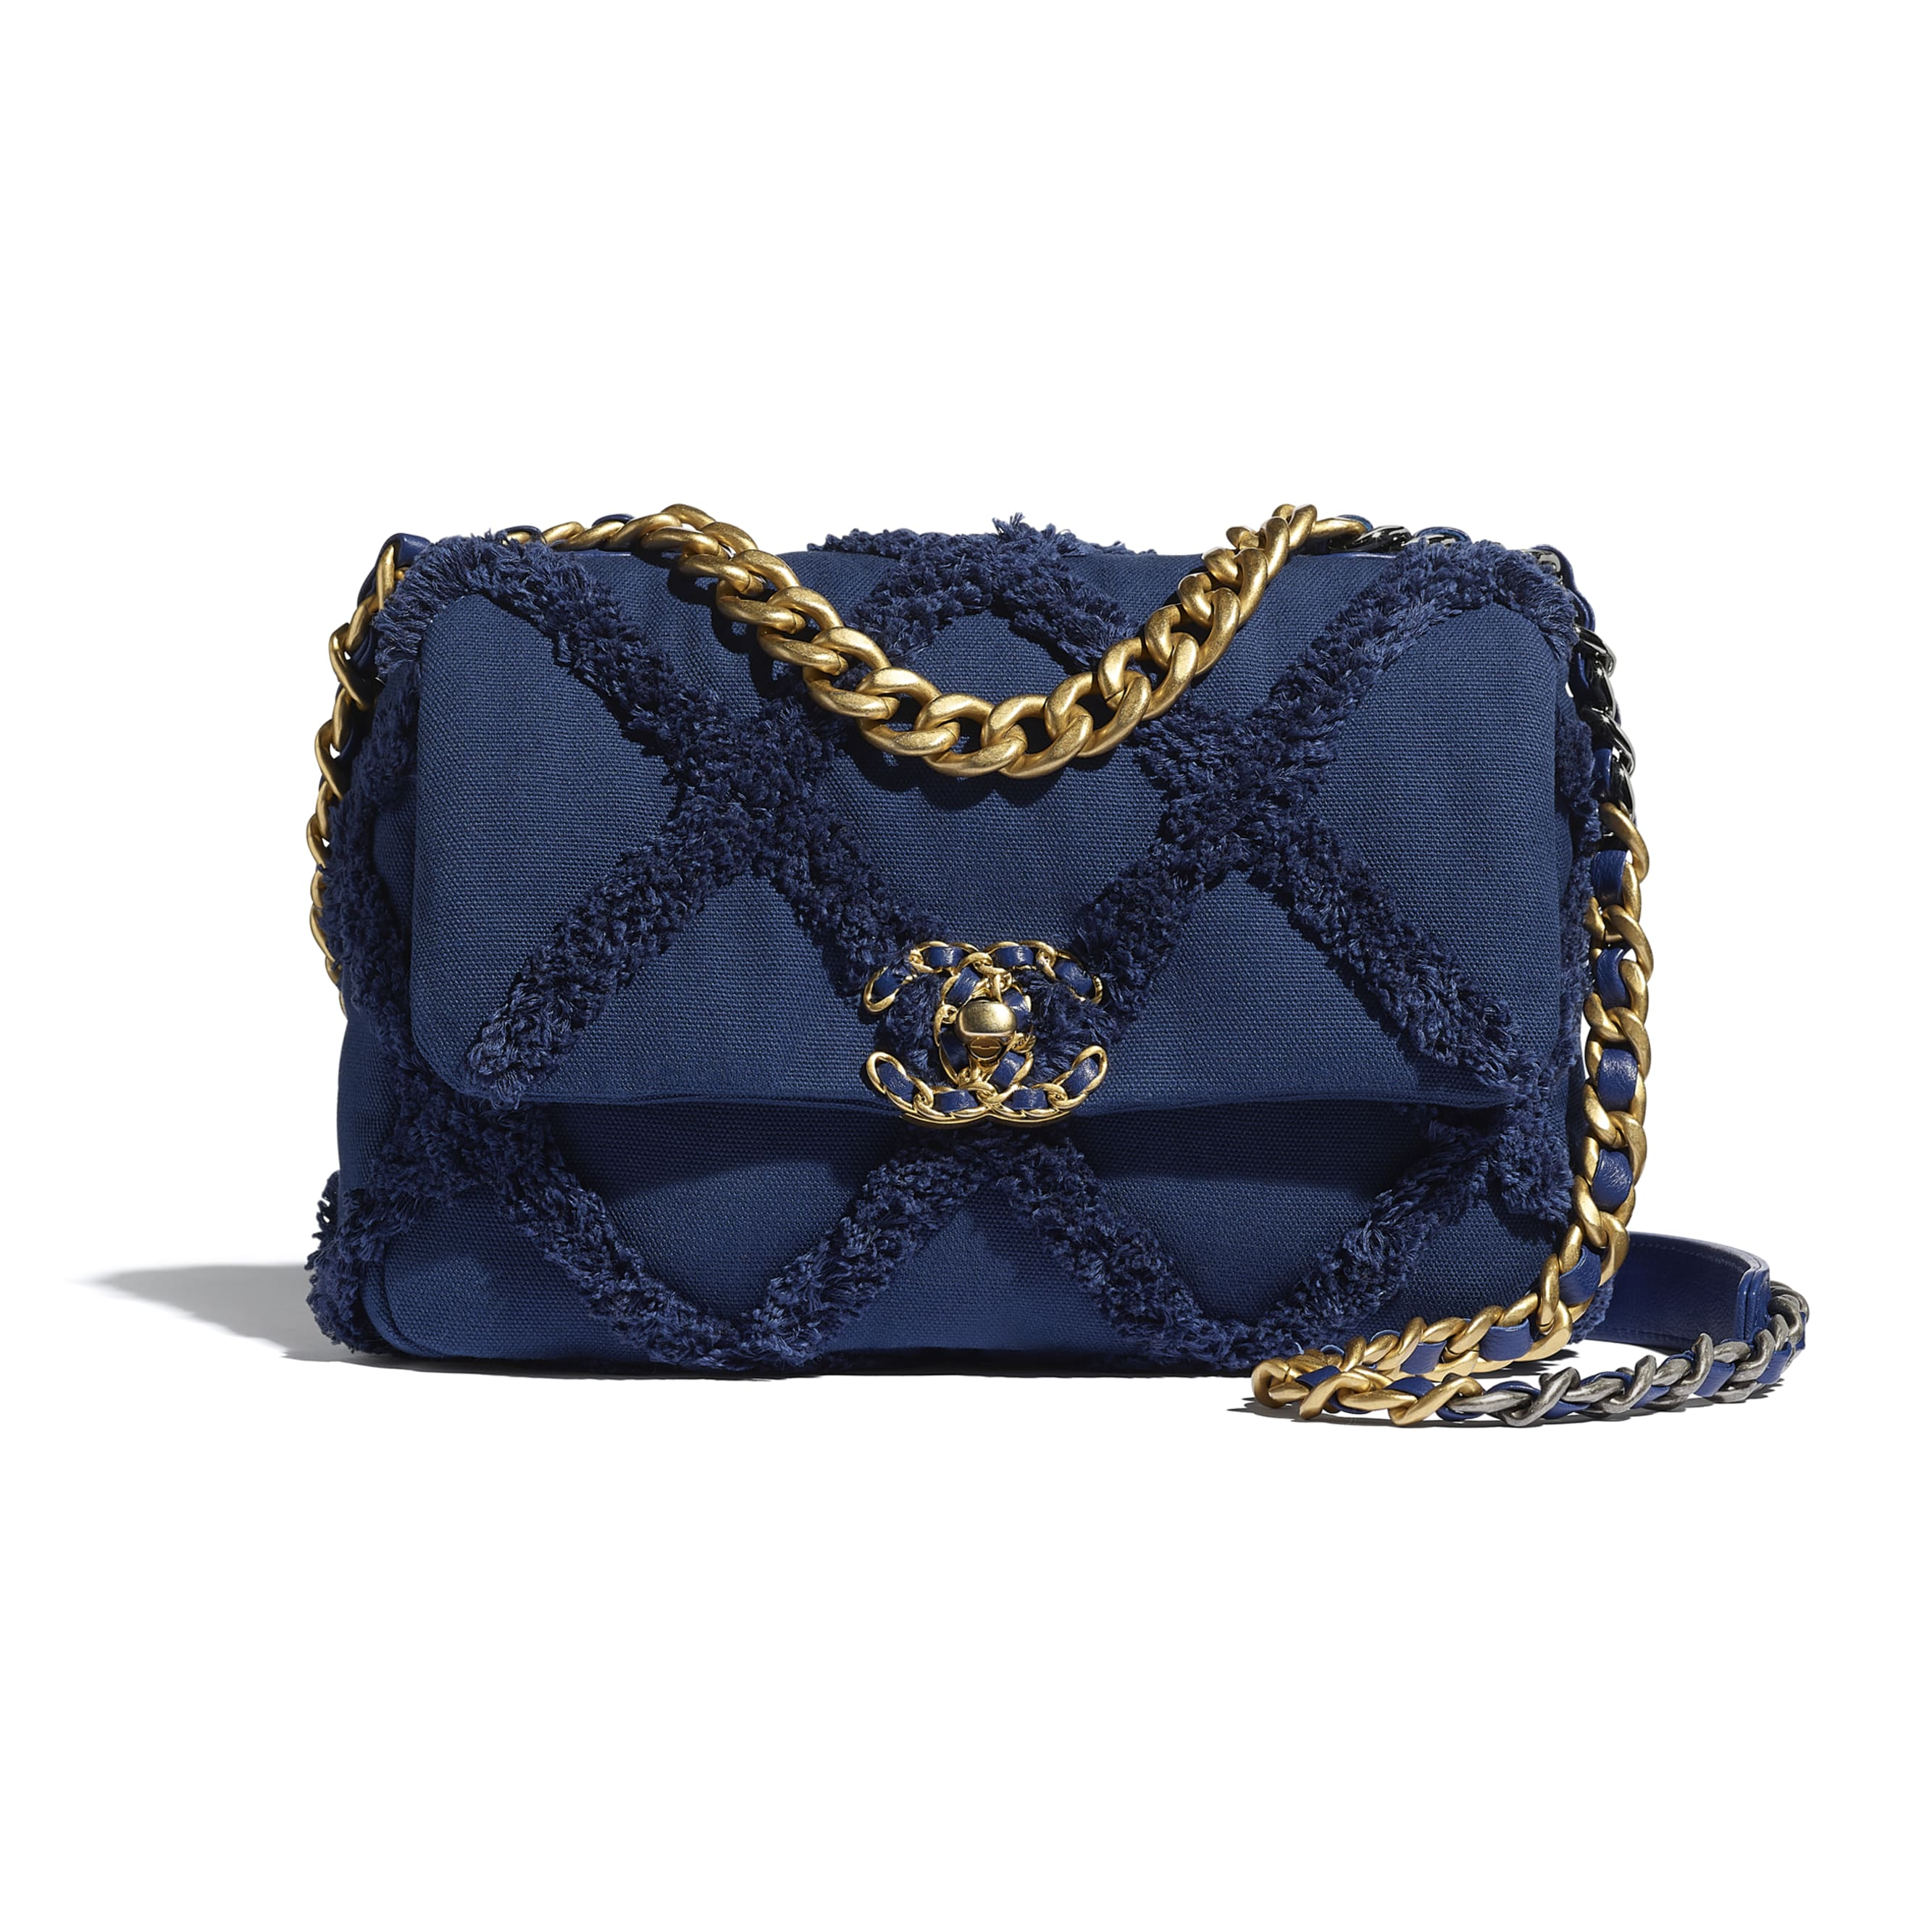 CHANEL 19 Flap Bag - Navy Blue - Cotton Canvas, Calfskin, Gold-Tone, Silver-Tone & Ruthenium-Finish Metal - CHANEL - Default view - see standard sized version